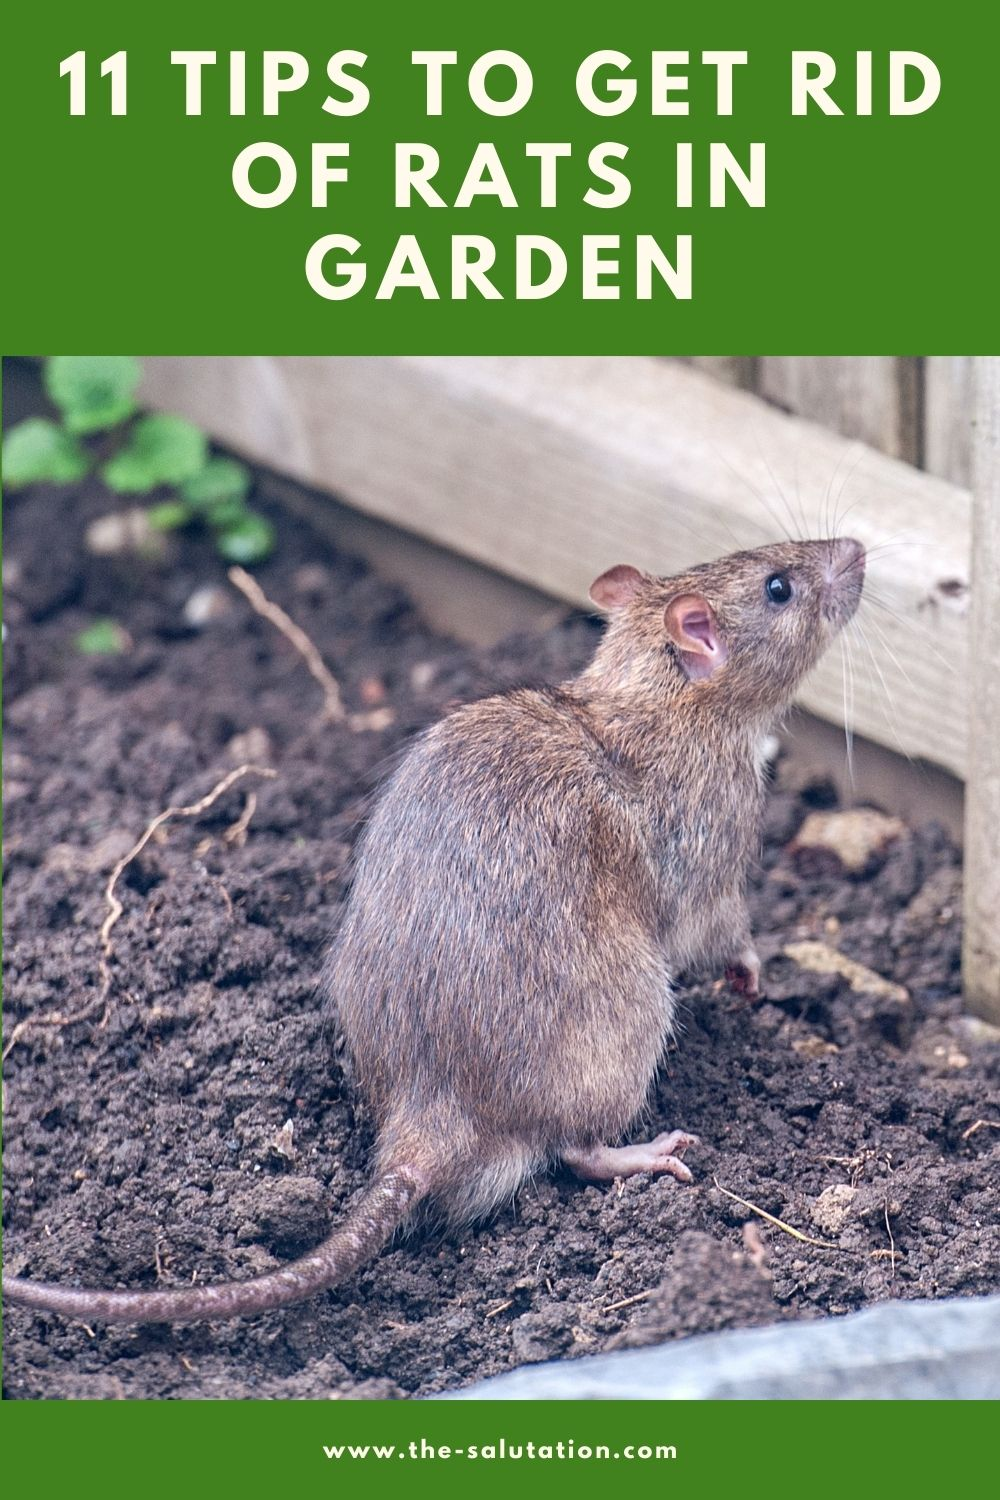 11 Tips to Get Rid of Rats in Garden 3